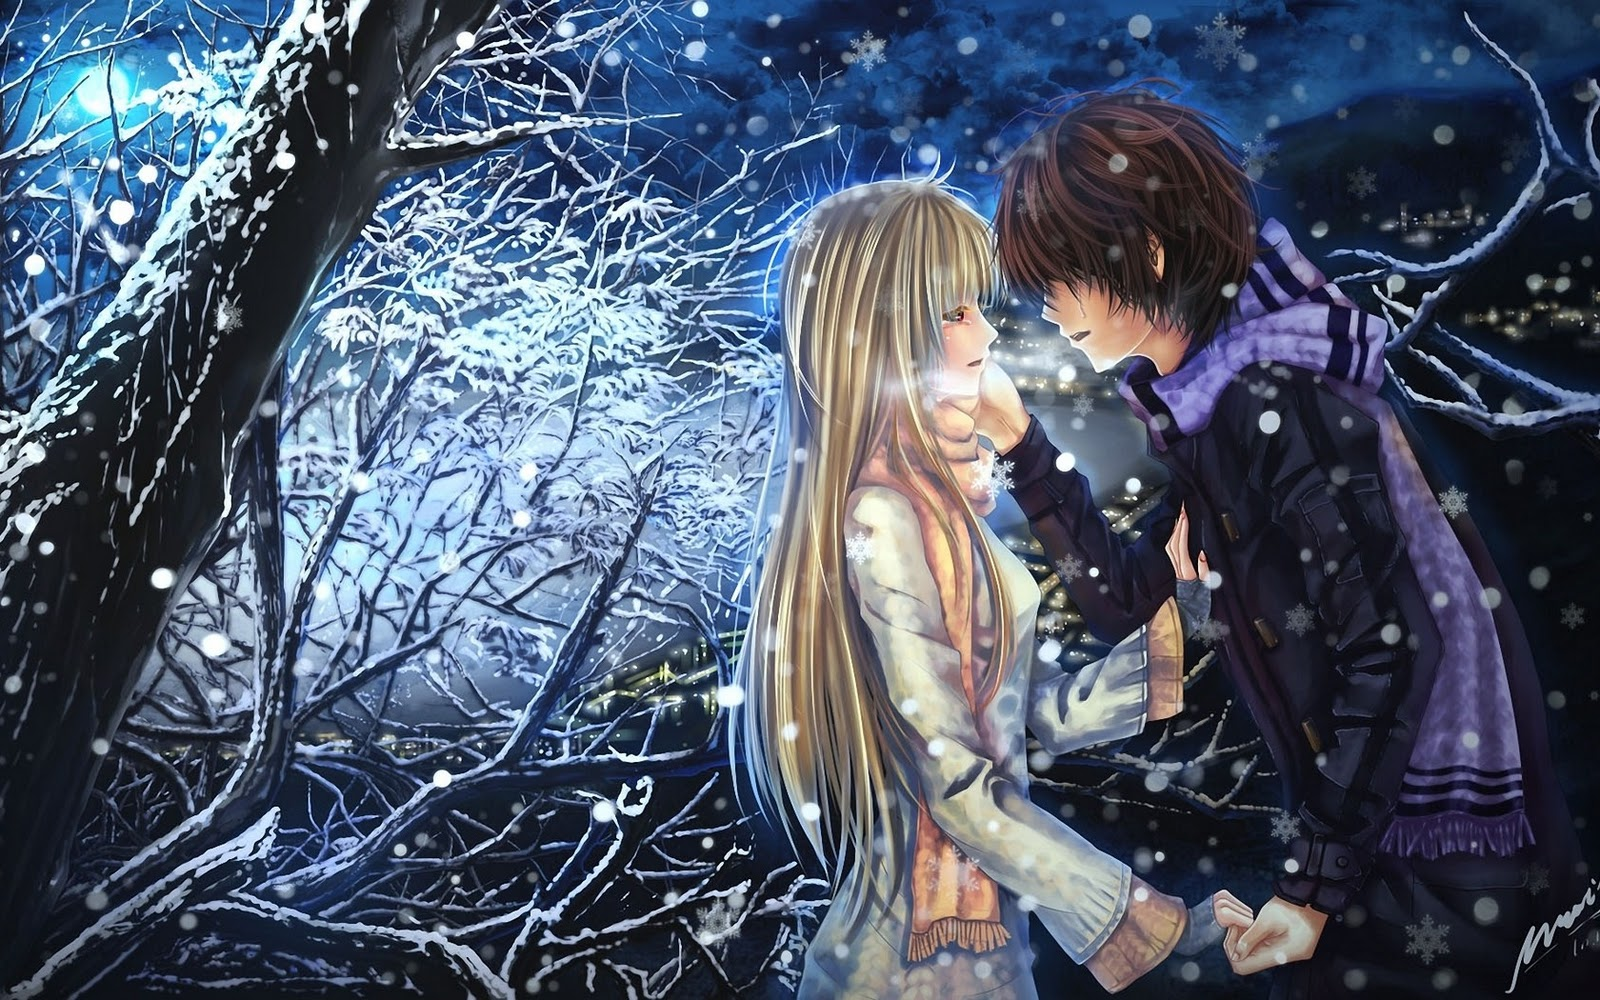 Love couple Wallpaper For Desktop : A2Z Wallpapers: Anime couples In Love Wallpapers